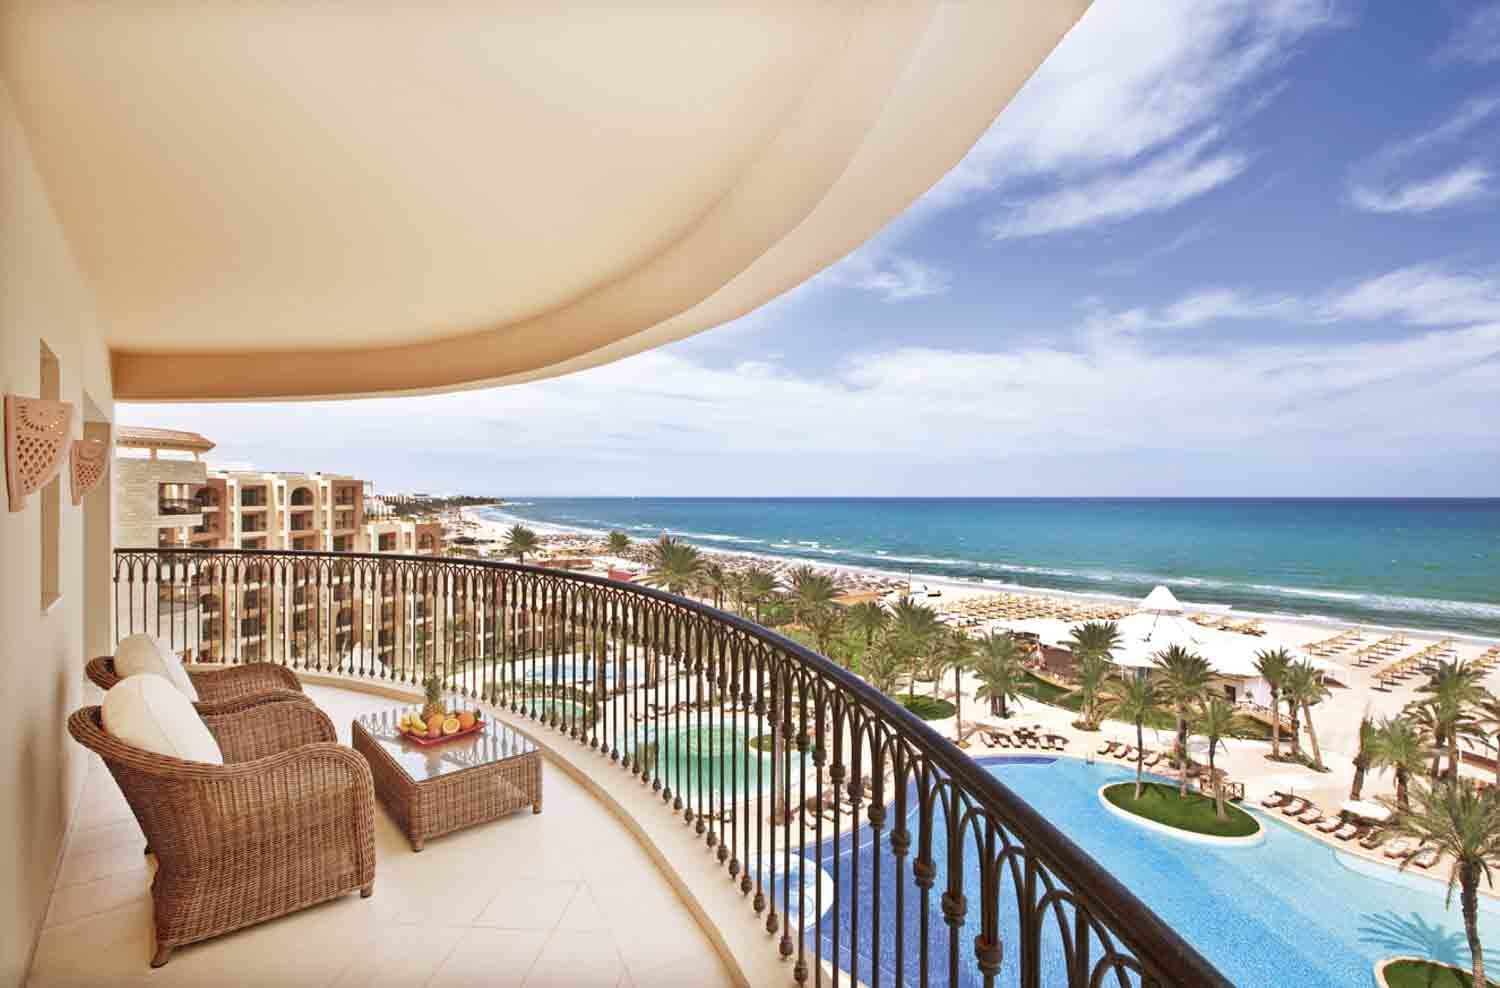 Movenpick Resort and Marine Spa Balcony and View